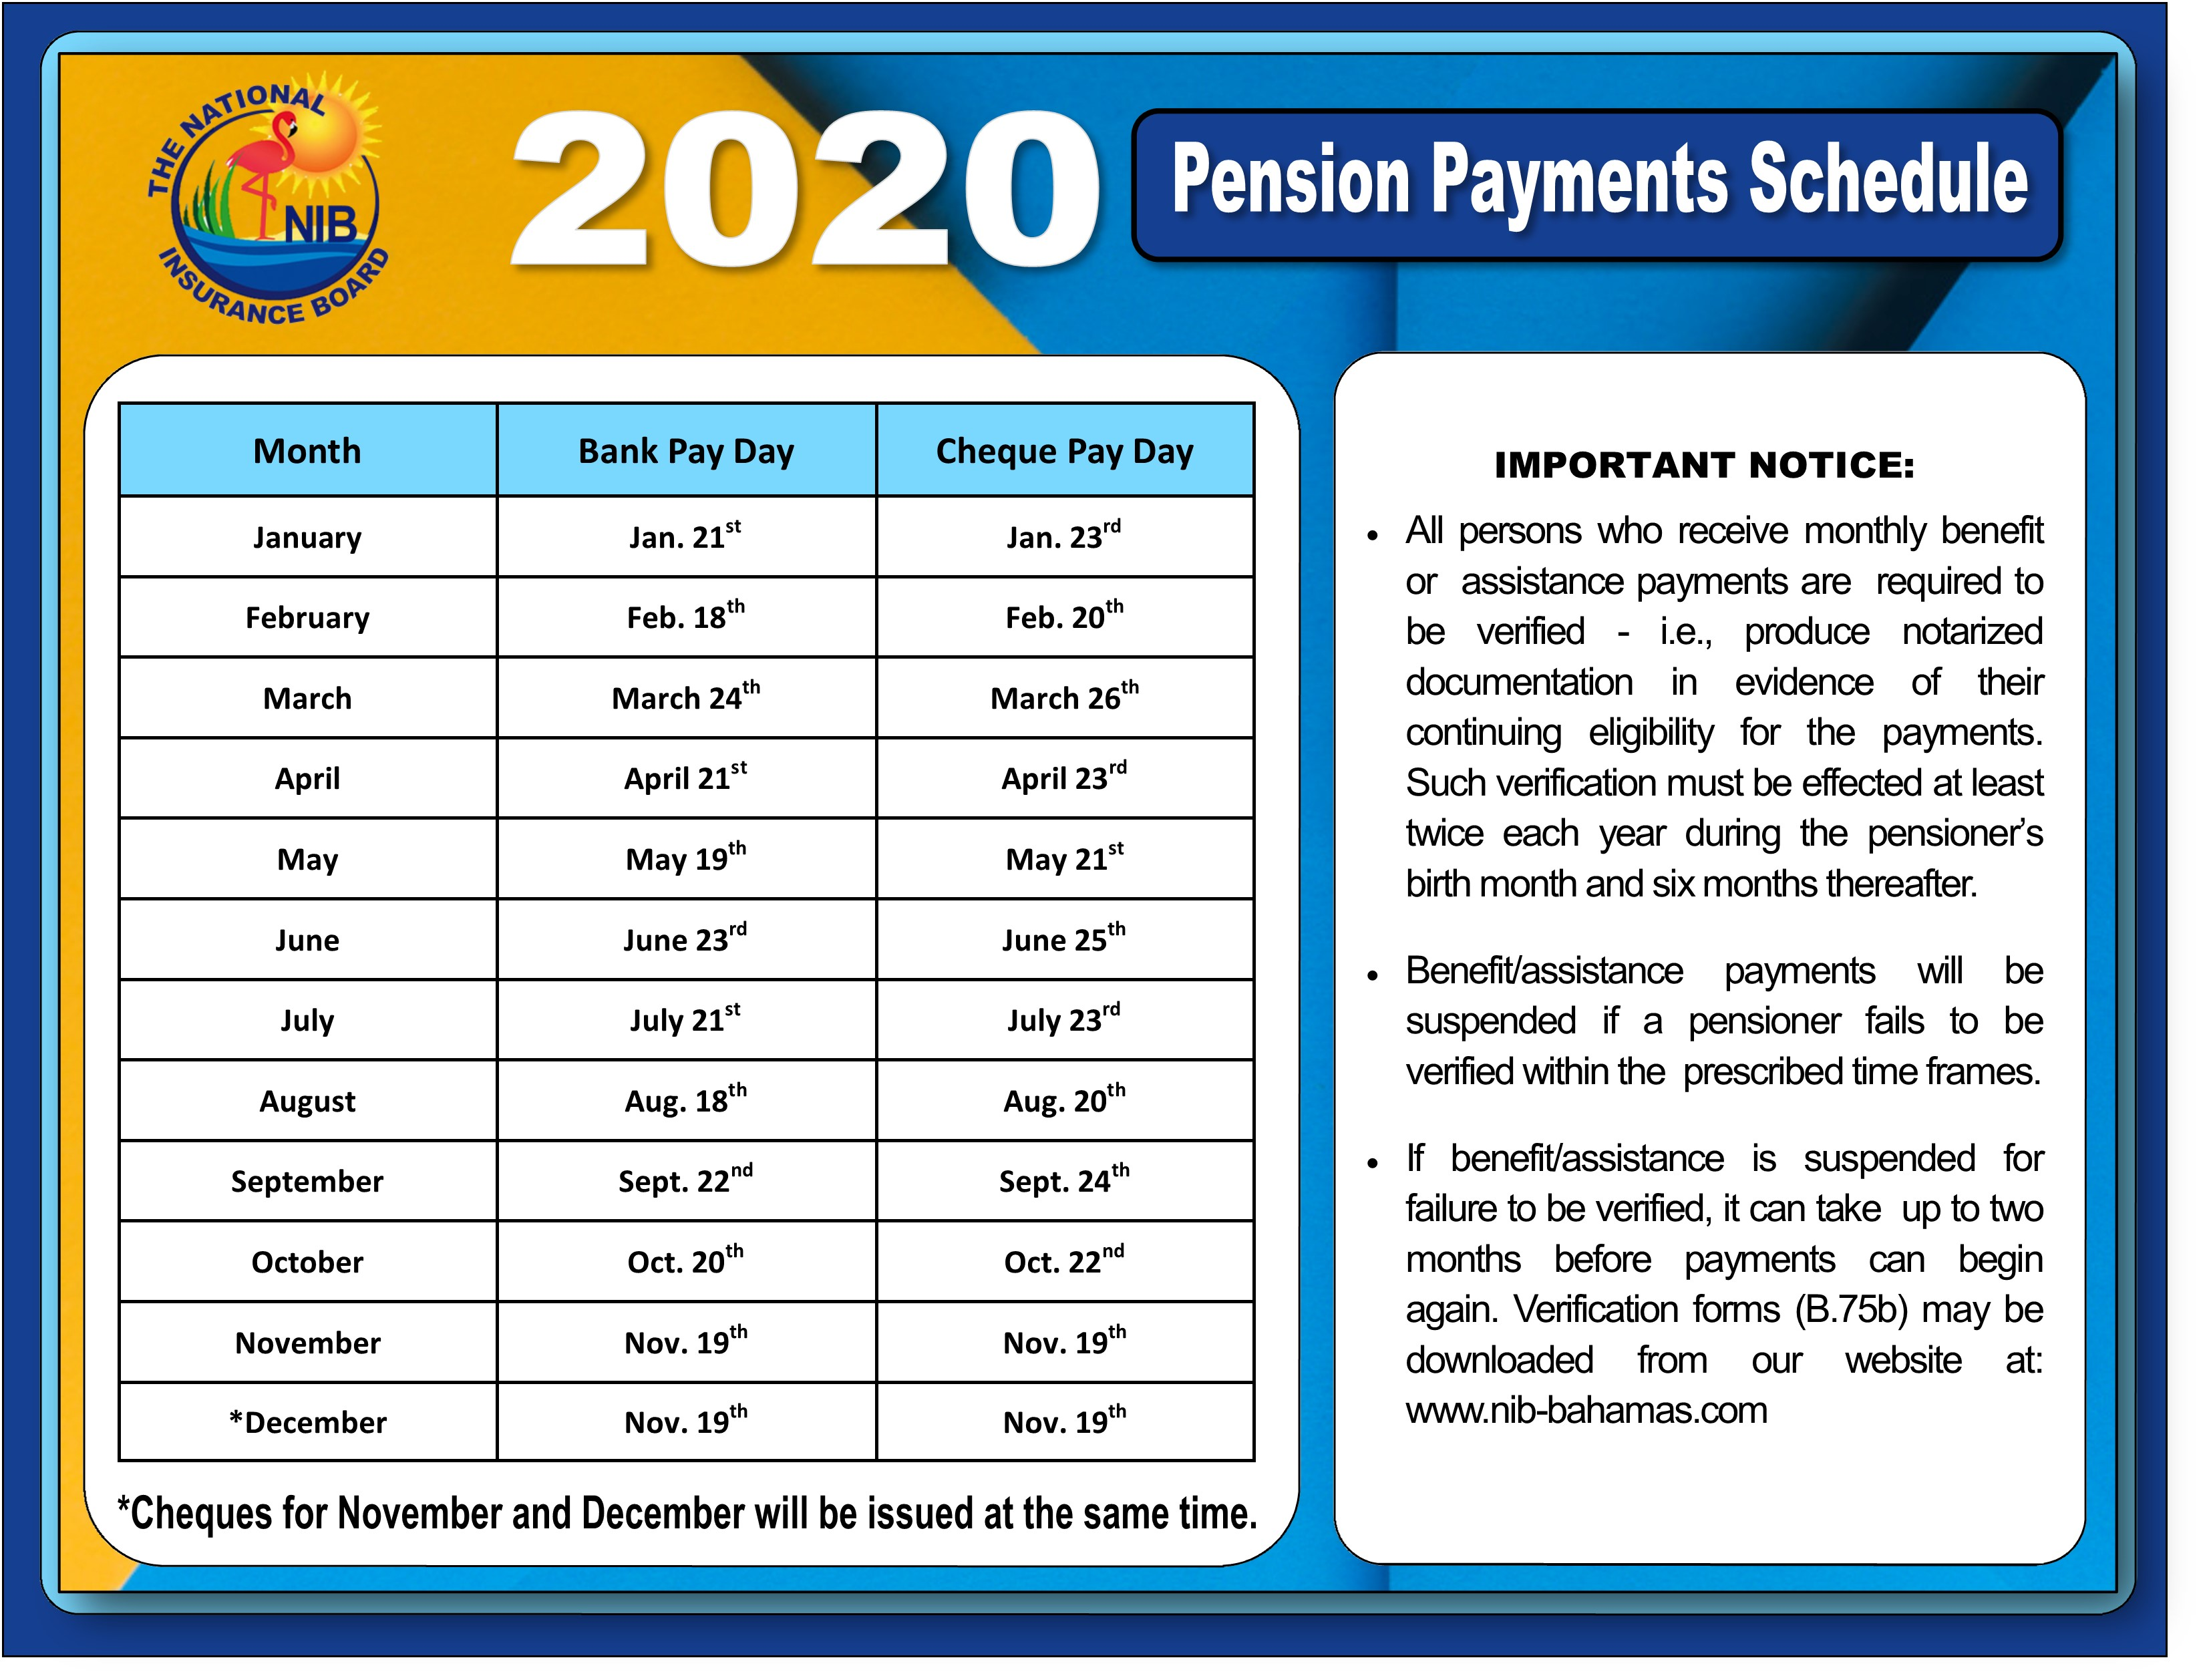 NIB - News - Pension Payment Schedule 2020